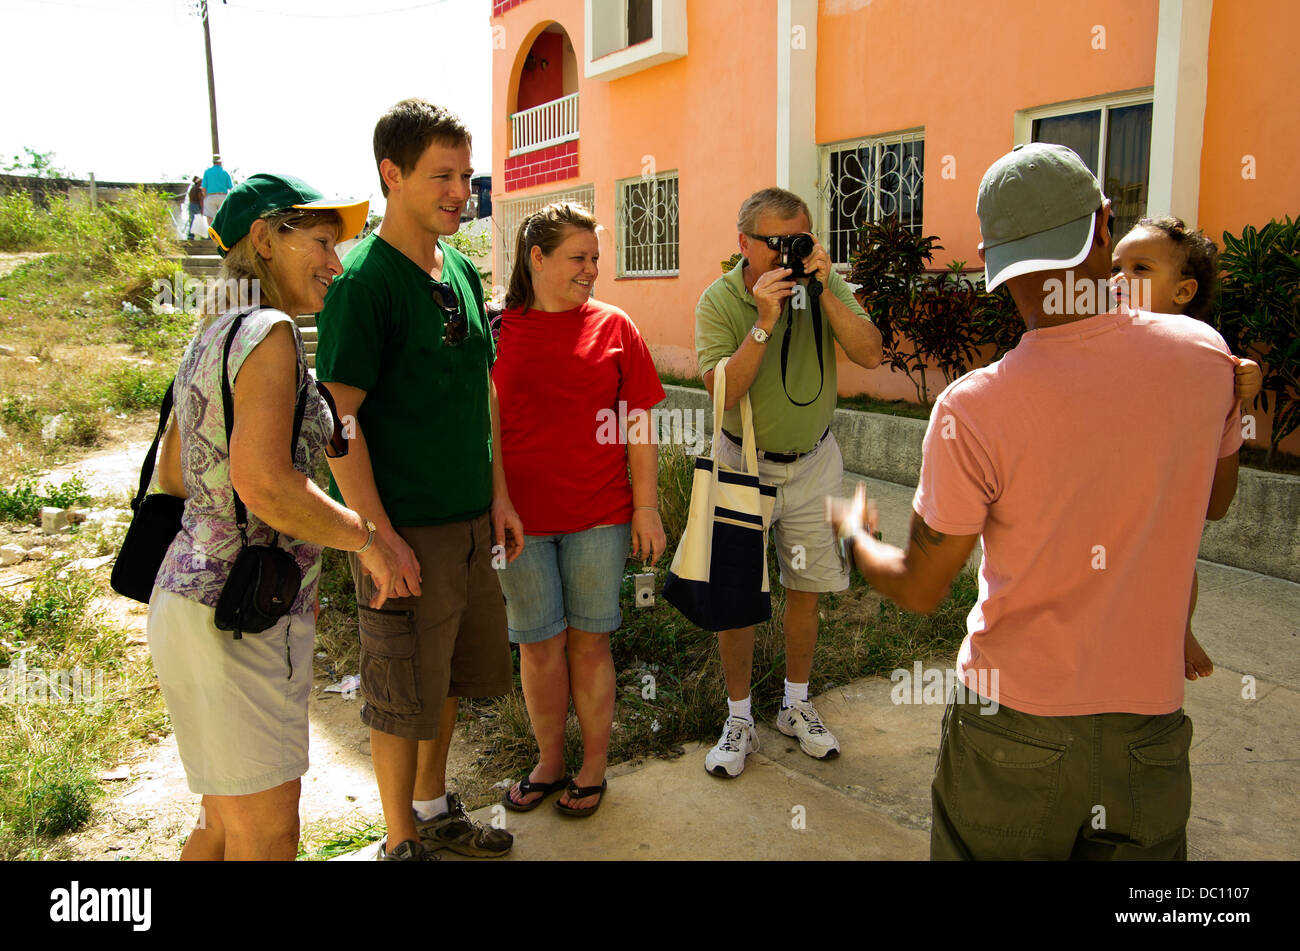 Tourist father photographs Cuban father and baby, as tourist mother, son and daughter watch. Stock Photo